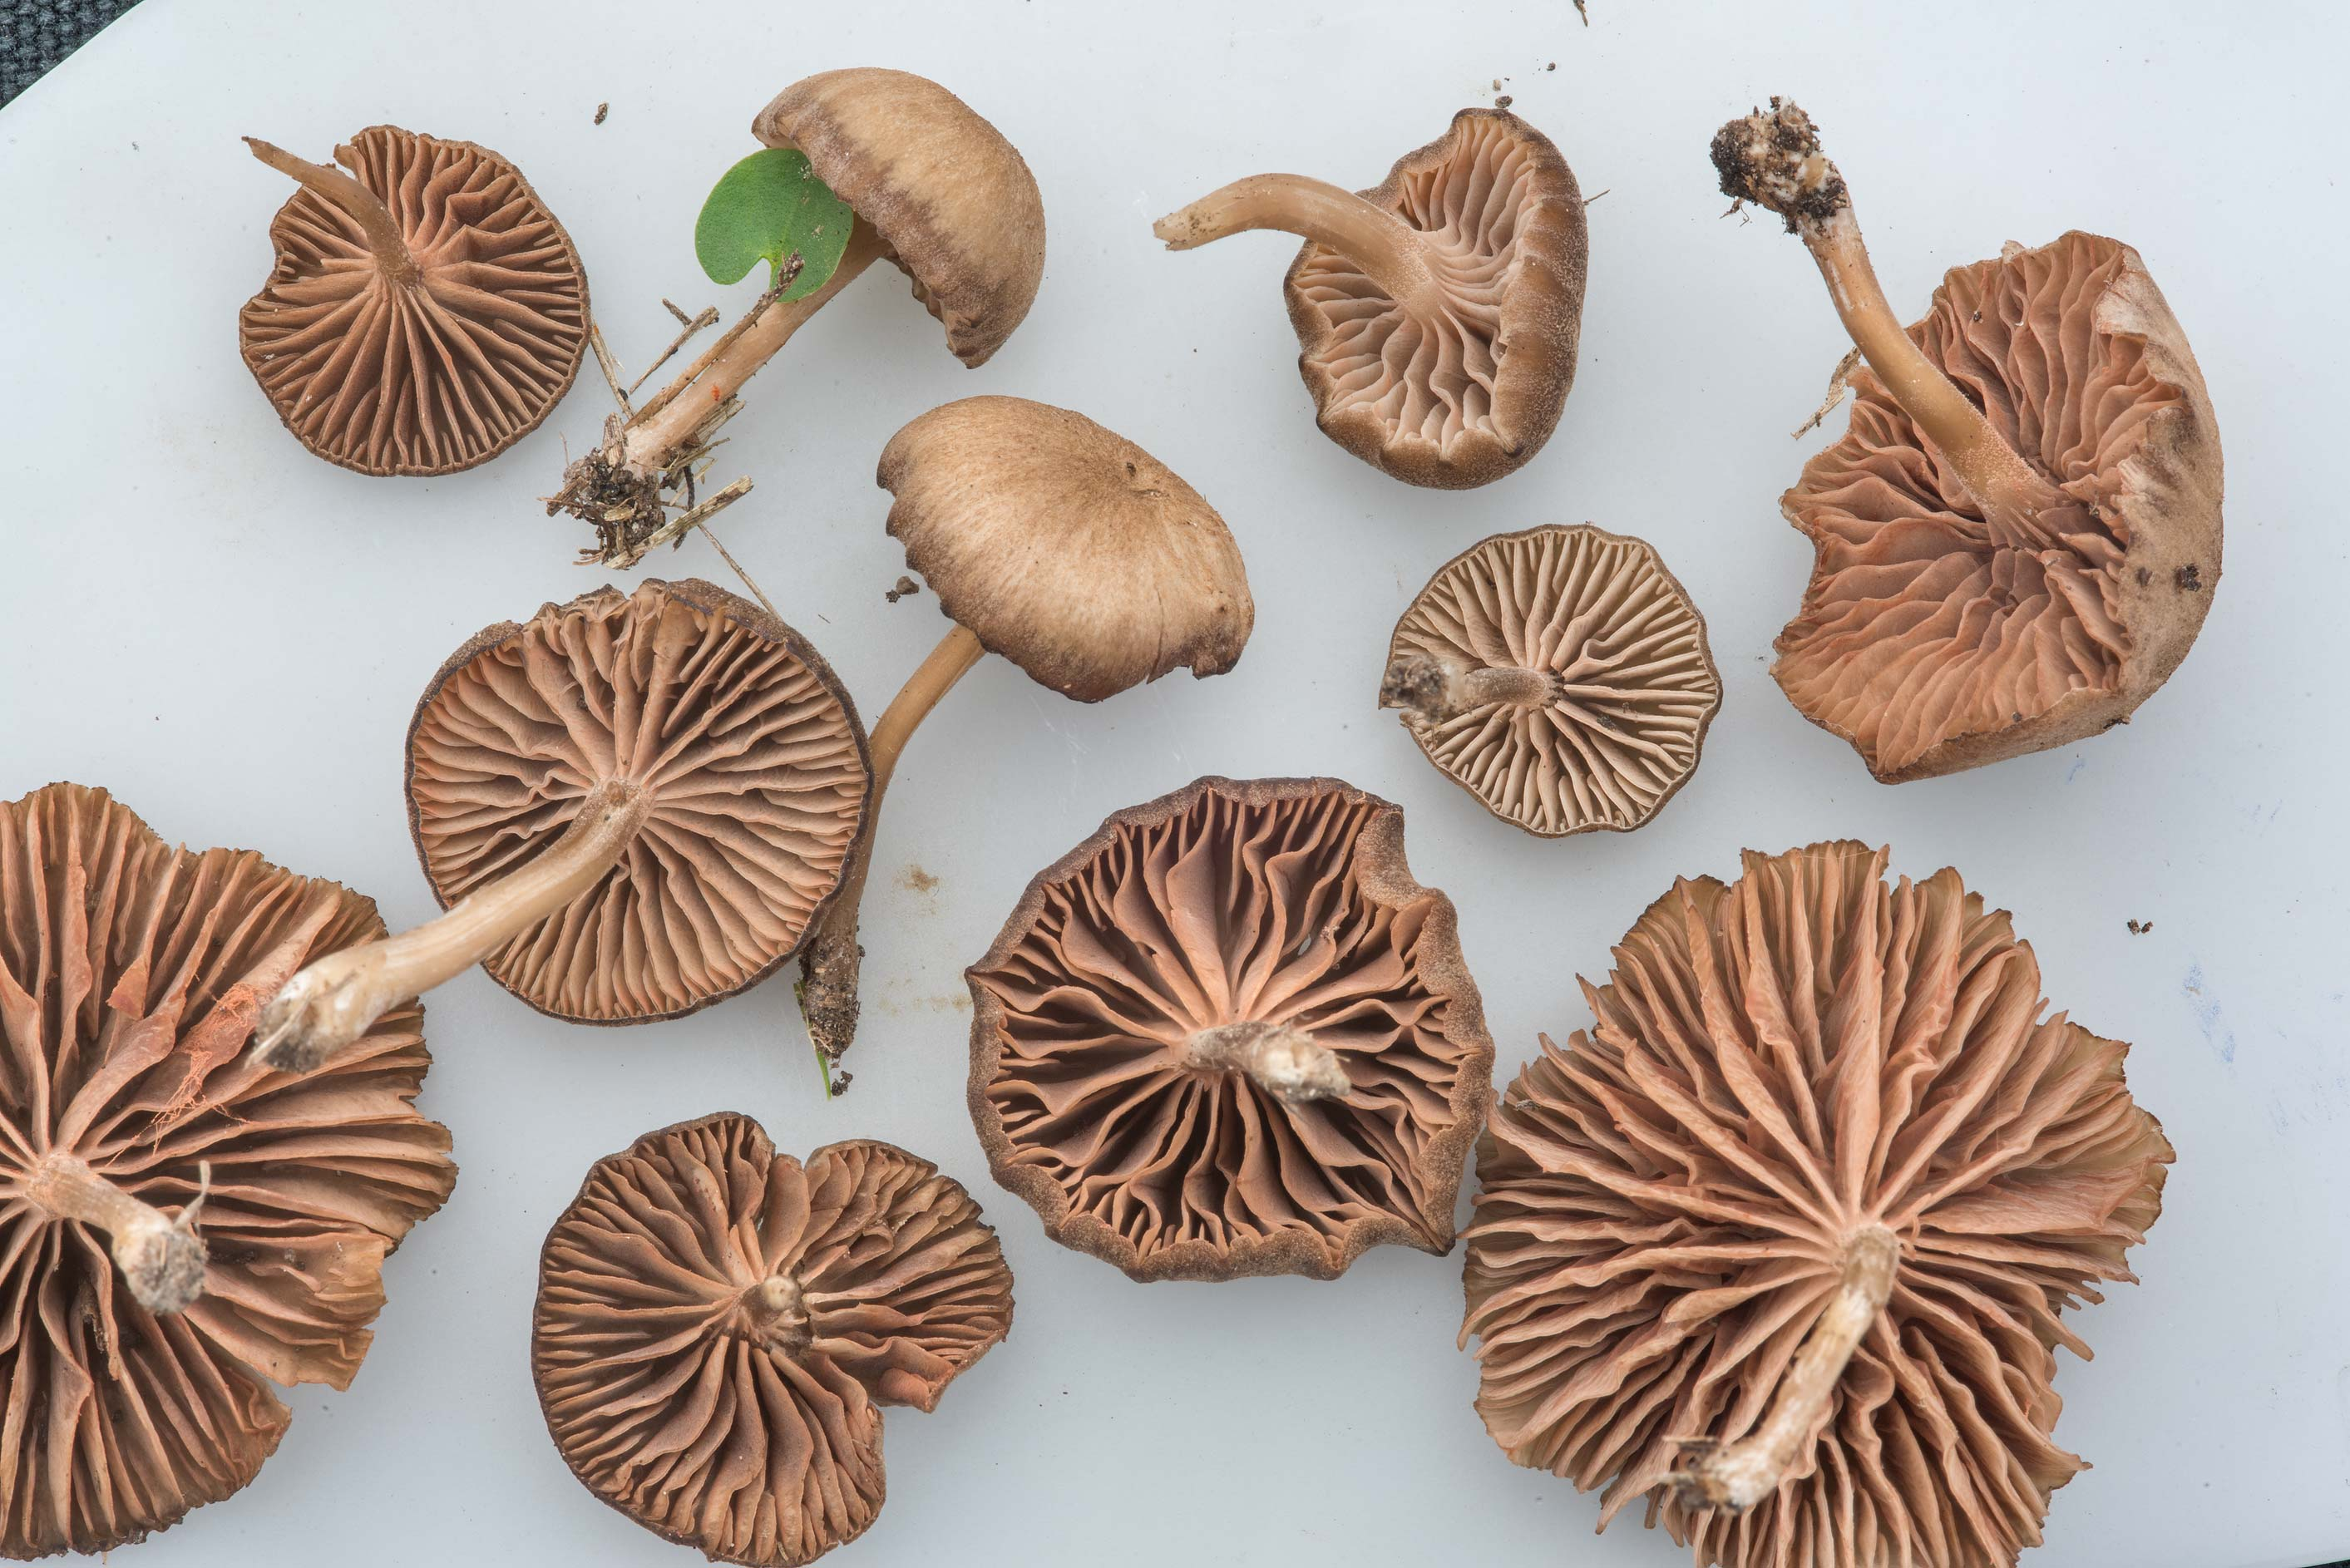 Nolanea mushrooms collected on Aggie Polo Fields...Memorial. College Station, Texas